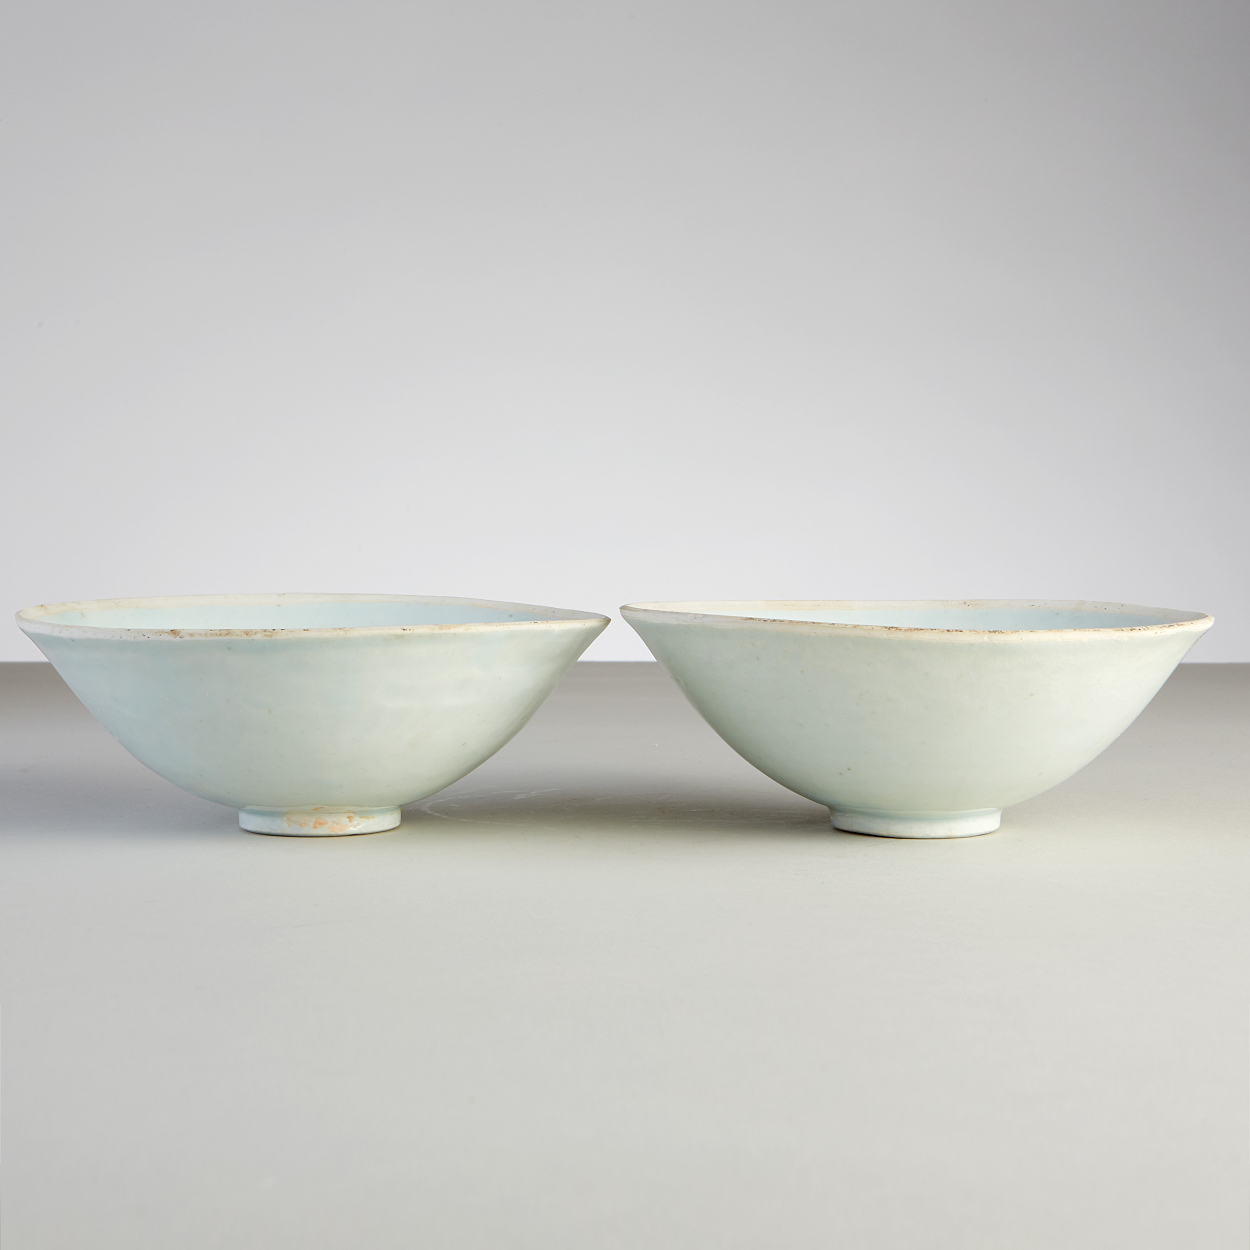 A Pair of Qingbai Bowls